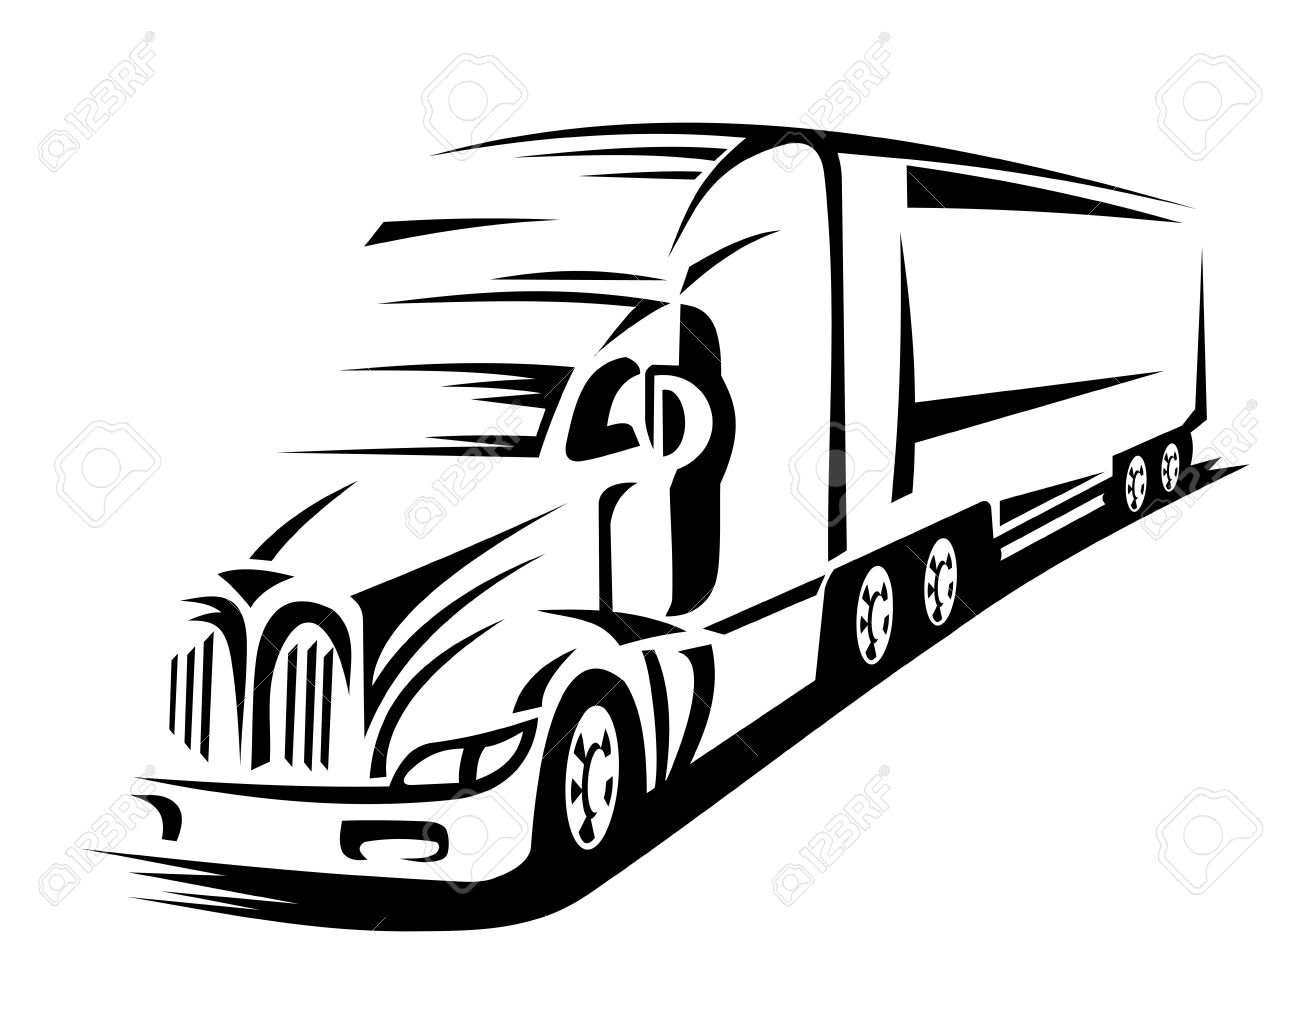 1300x1013 Moving Delivery Truck On Road For Transportation Design Or Concept